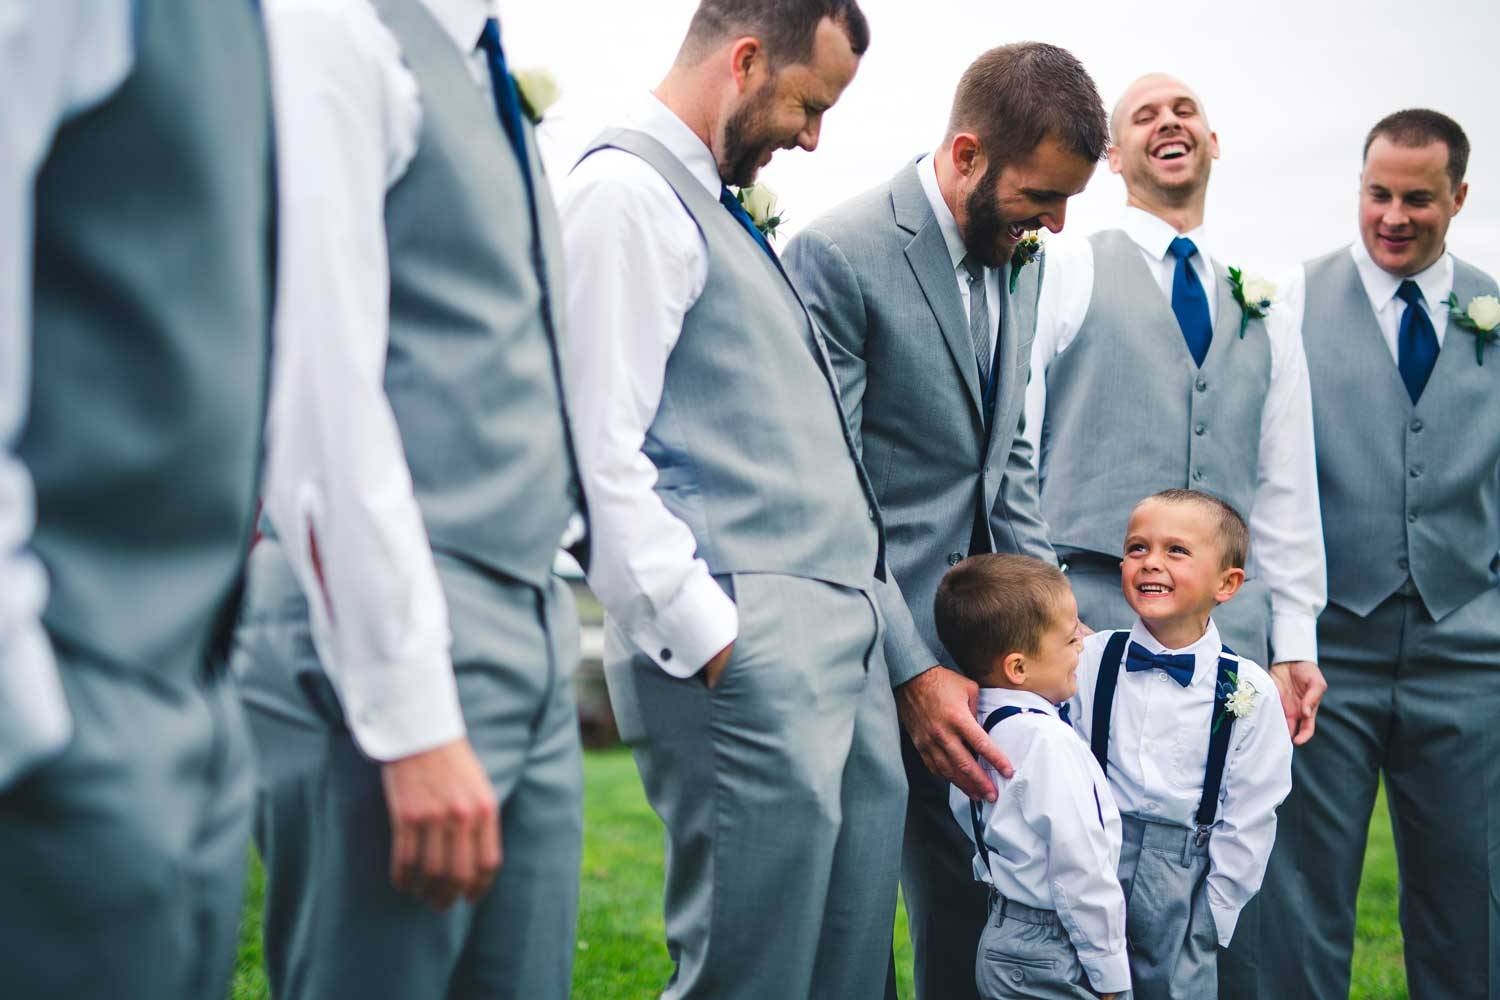 Wedding Group Photo with Kids